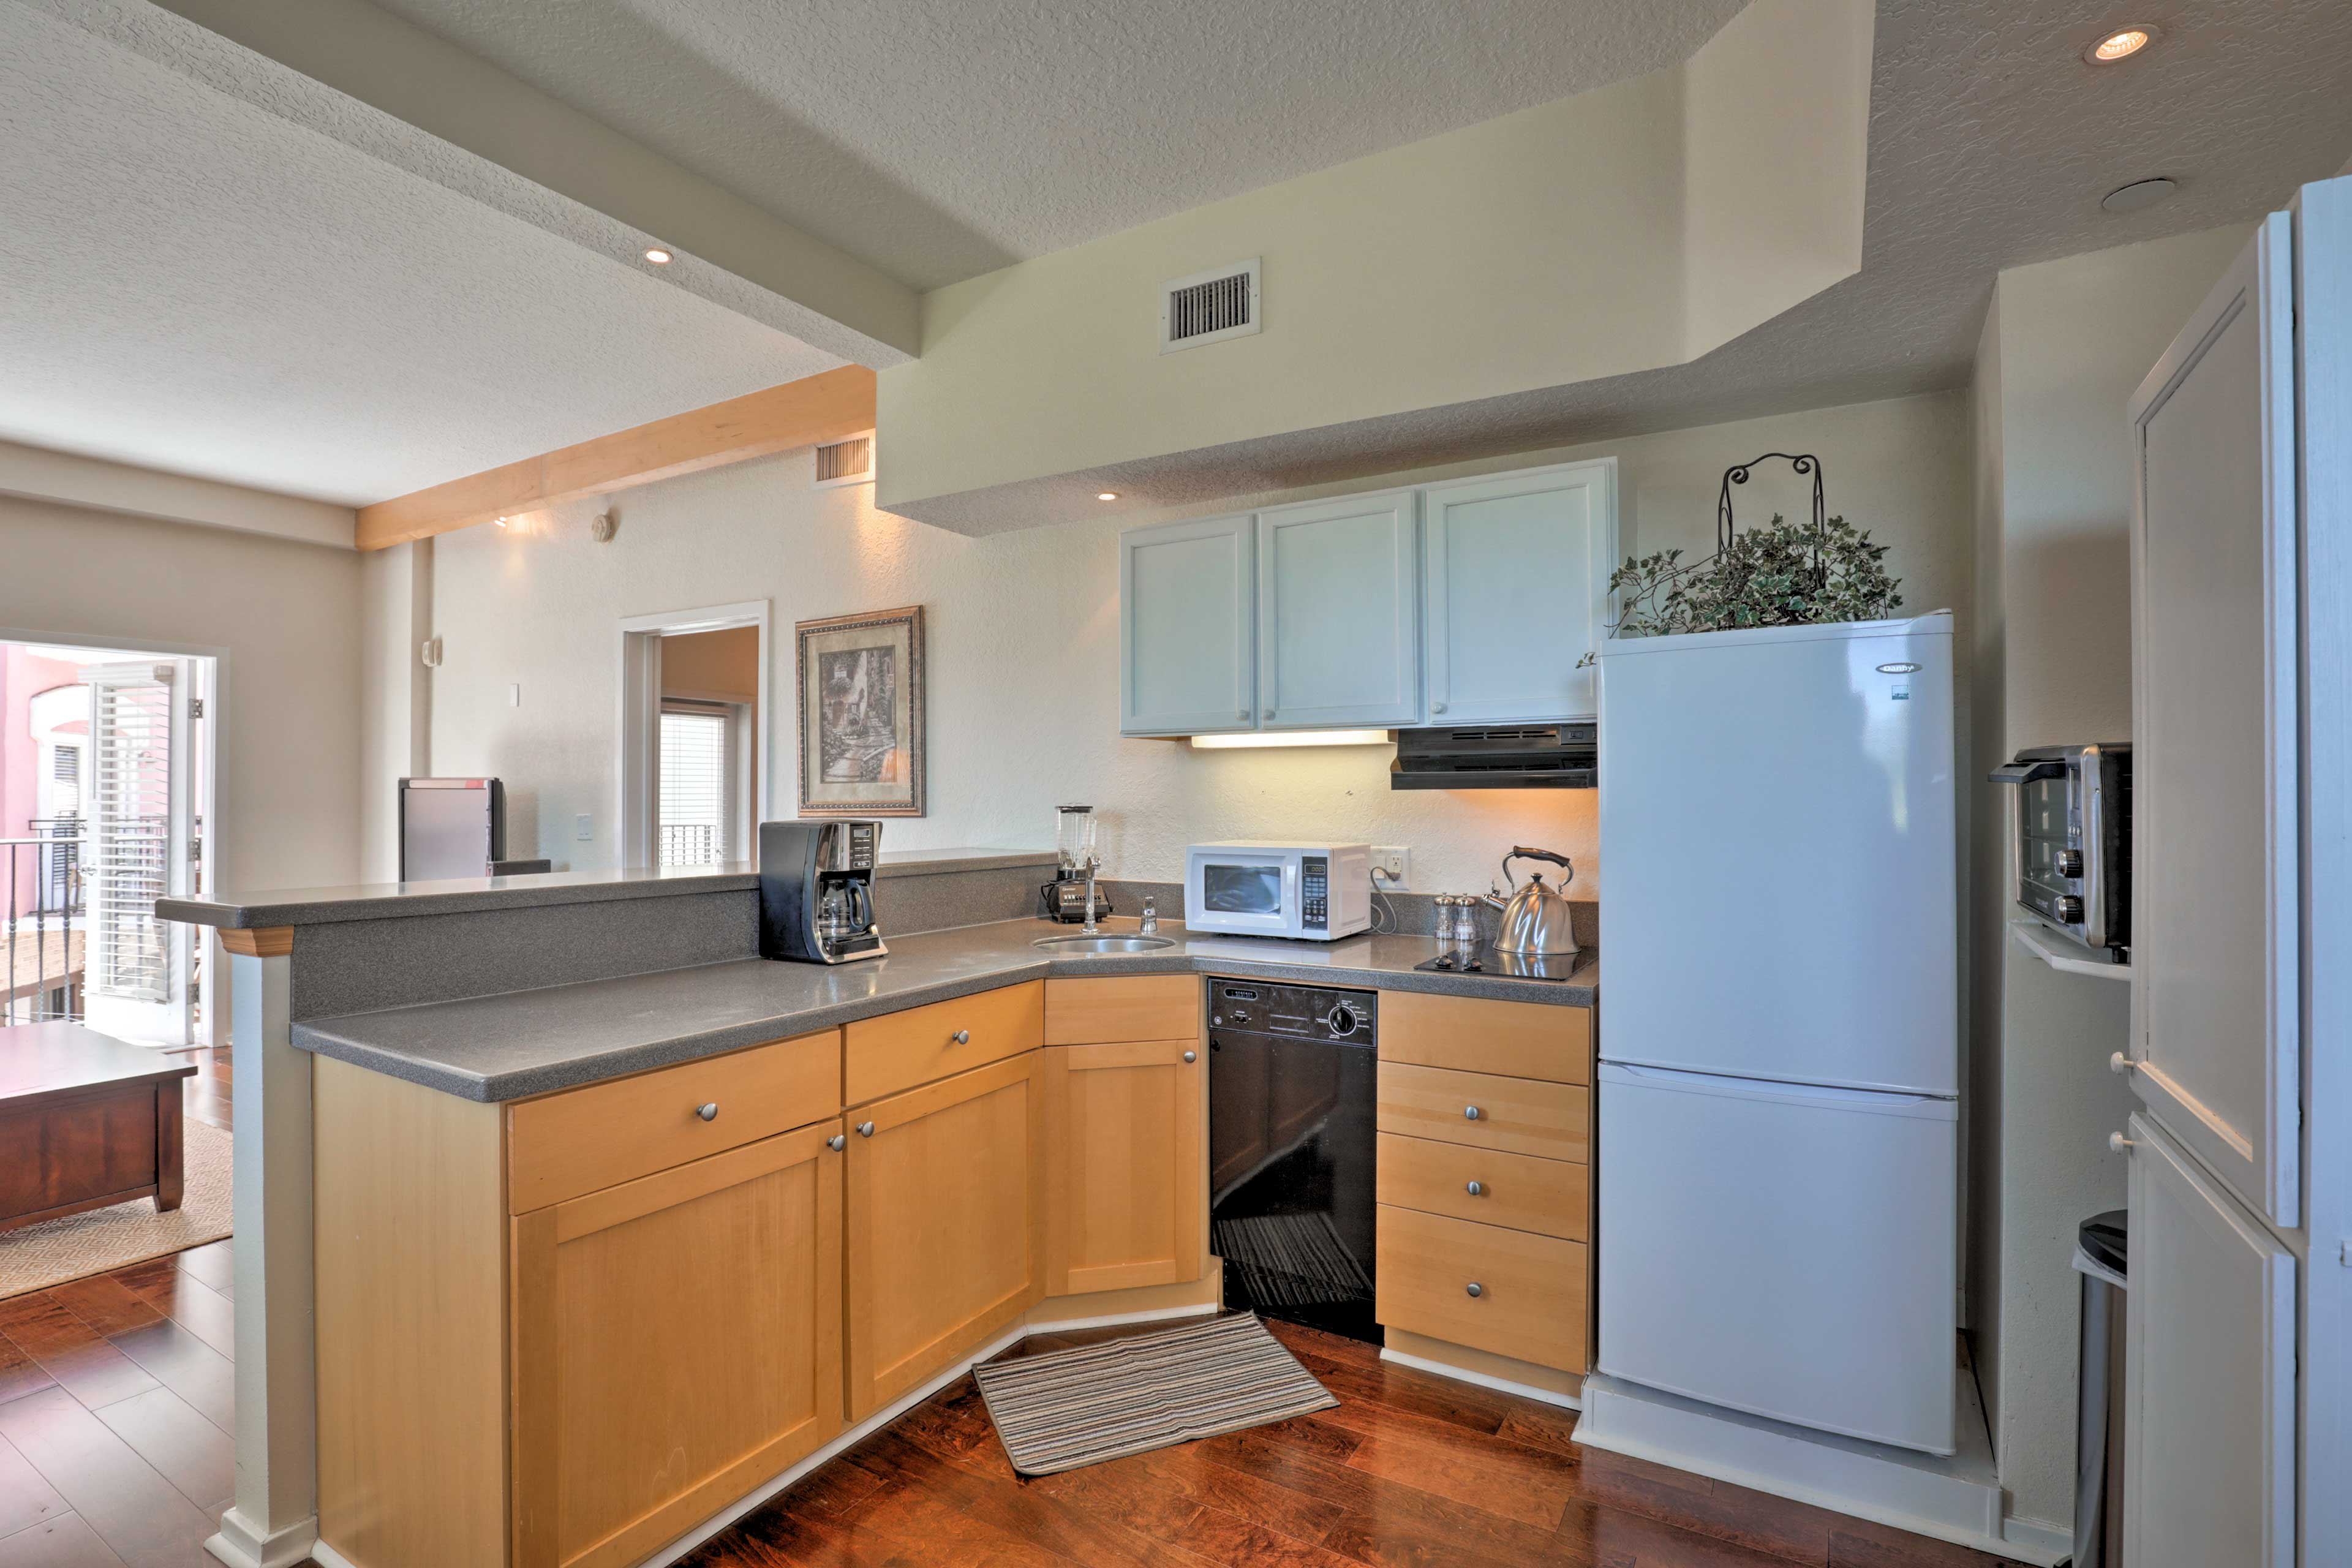 With a 2-burner stove, this condo makes cooking a breeze.